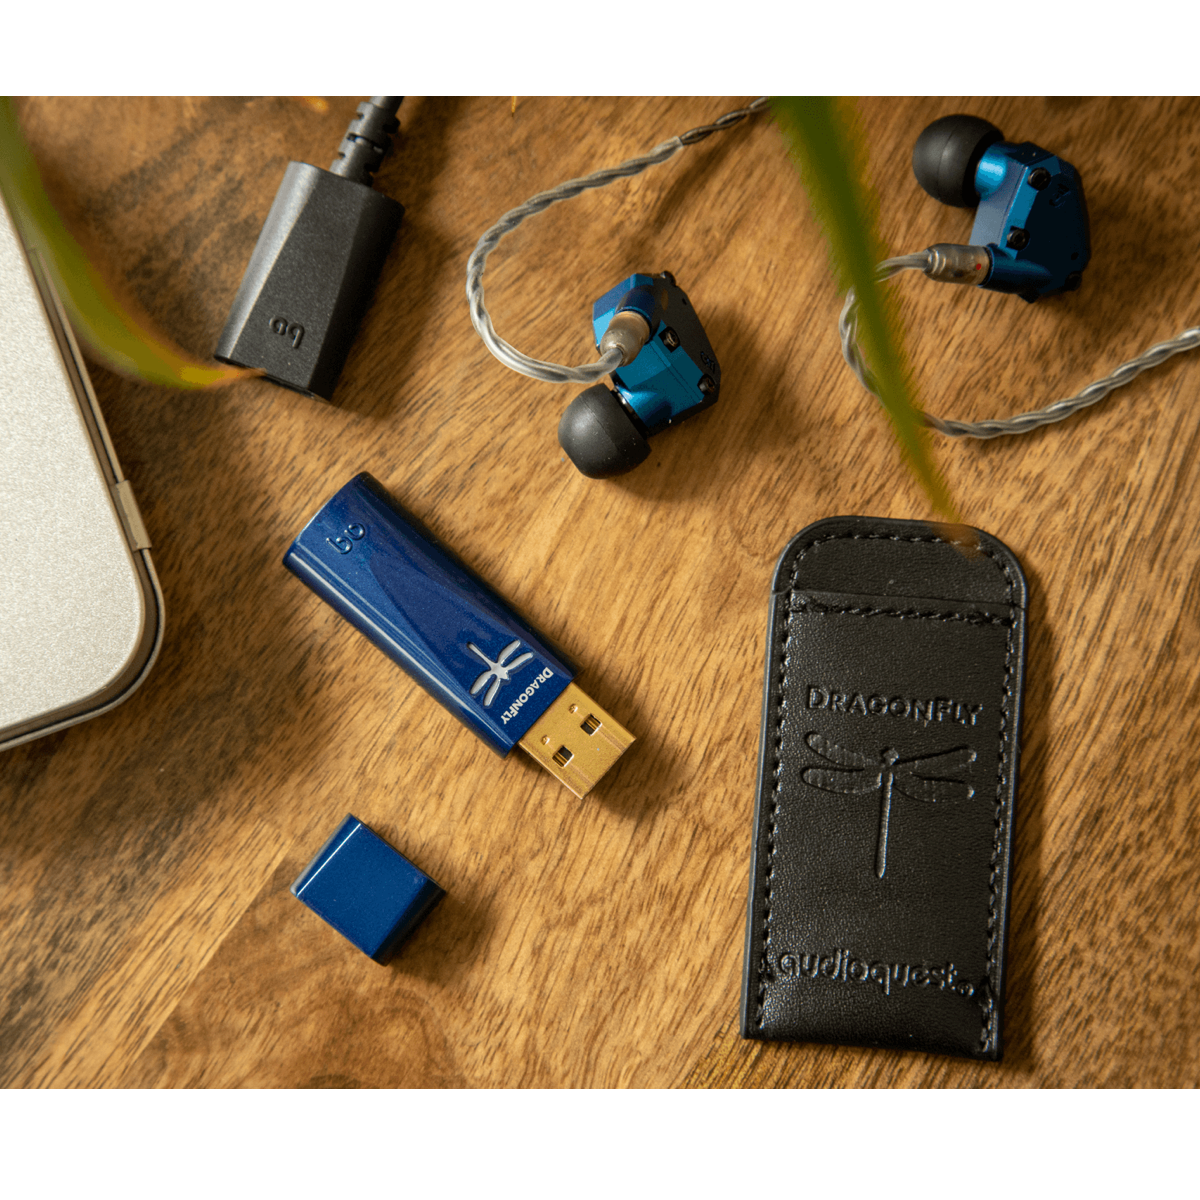 AudioQuest Dragonfly Cobalt - USB DAC + Preamp + Headphone Amplifier - AVStore